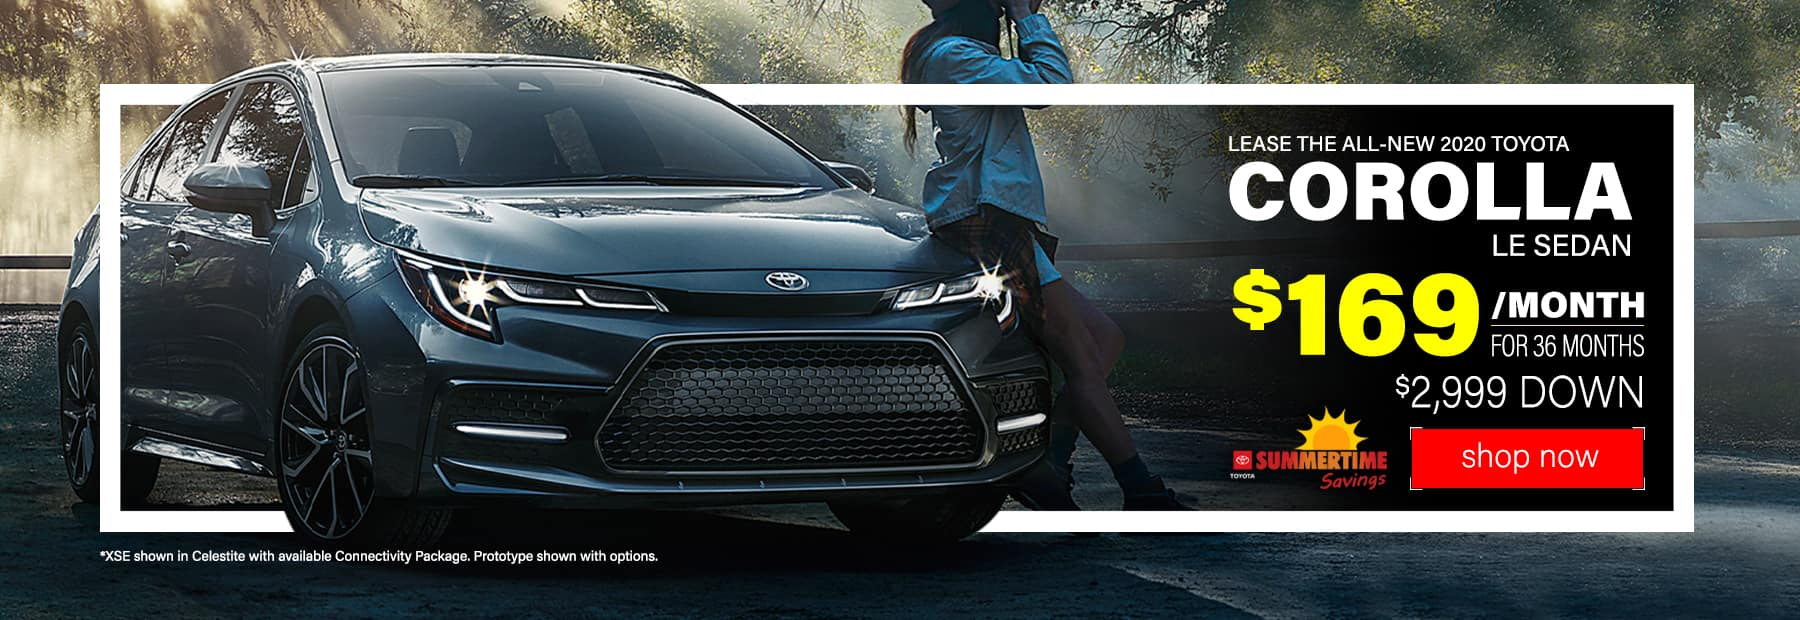 Lease a 2020 Toyota Corolla LE Sedan for $169/mo. for 36 mos. with $2,999 down